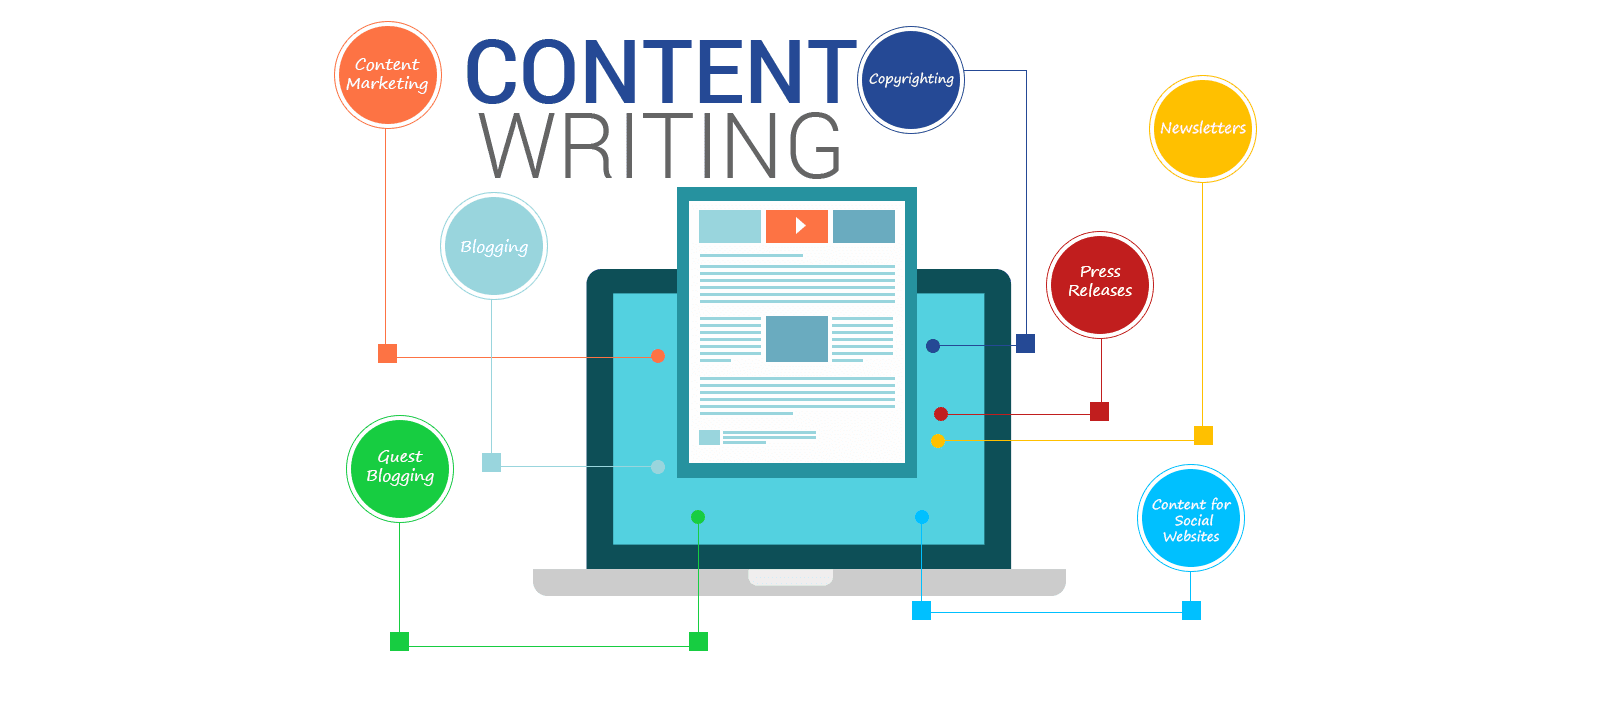 Content Writing Company Content Writing Services In India Why  If Your Business Relies On Its Online Reputation Then Content Marketing Is  One Of The Most Important Thing That You Need To For Growing Your Business  And